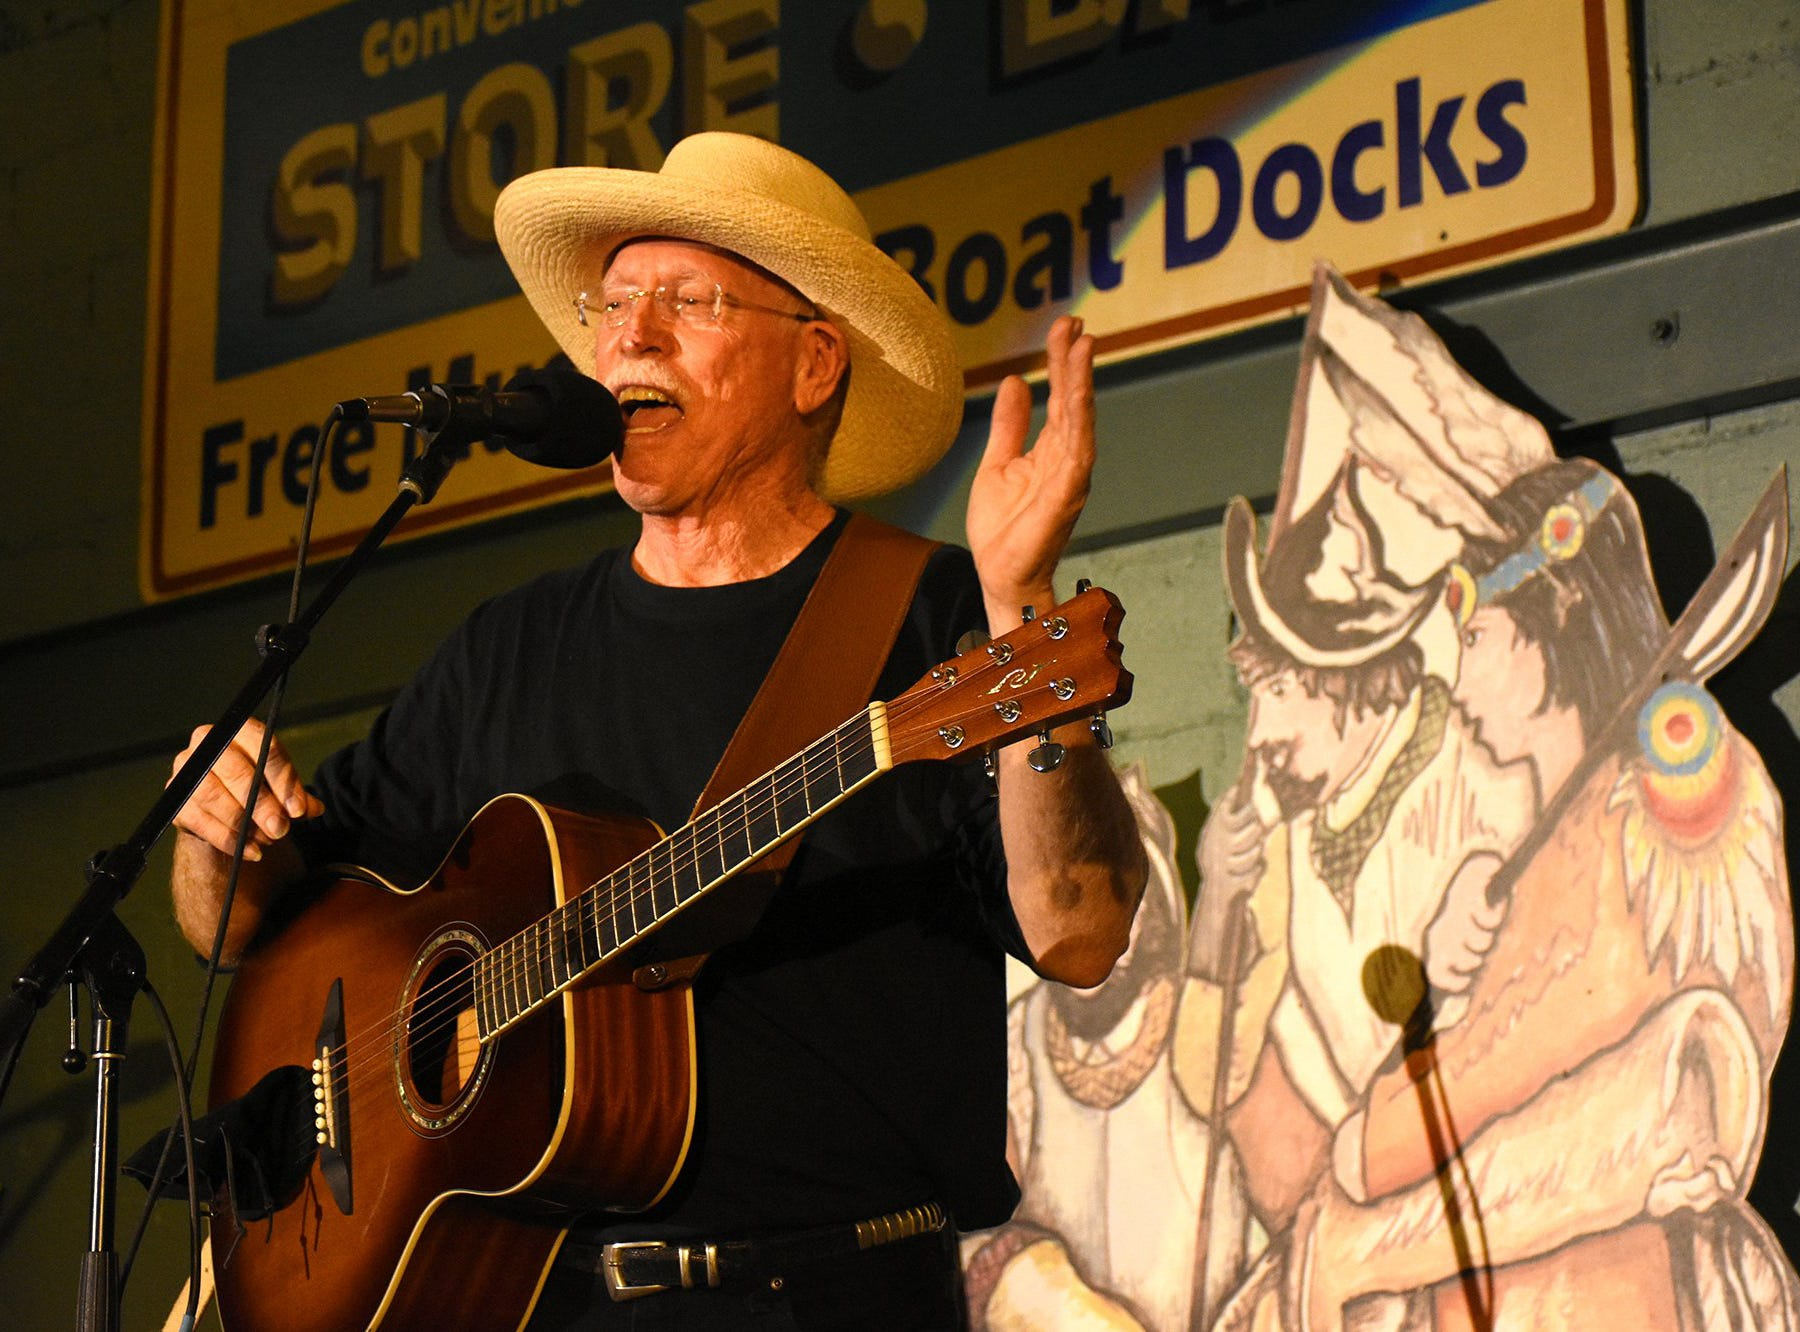 J. Robert tells the story behind one of his songs. The Florida Songwriter Showcase brought original Sunshine State music to the Margood Harbor Park stage in Goodland on Friday evening.